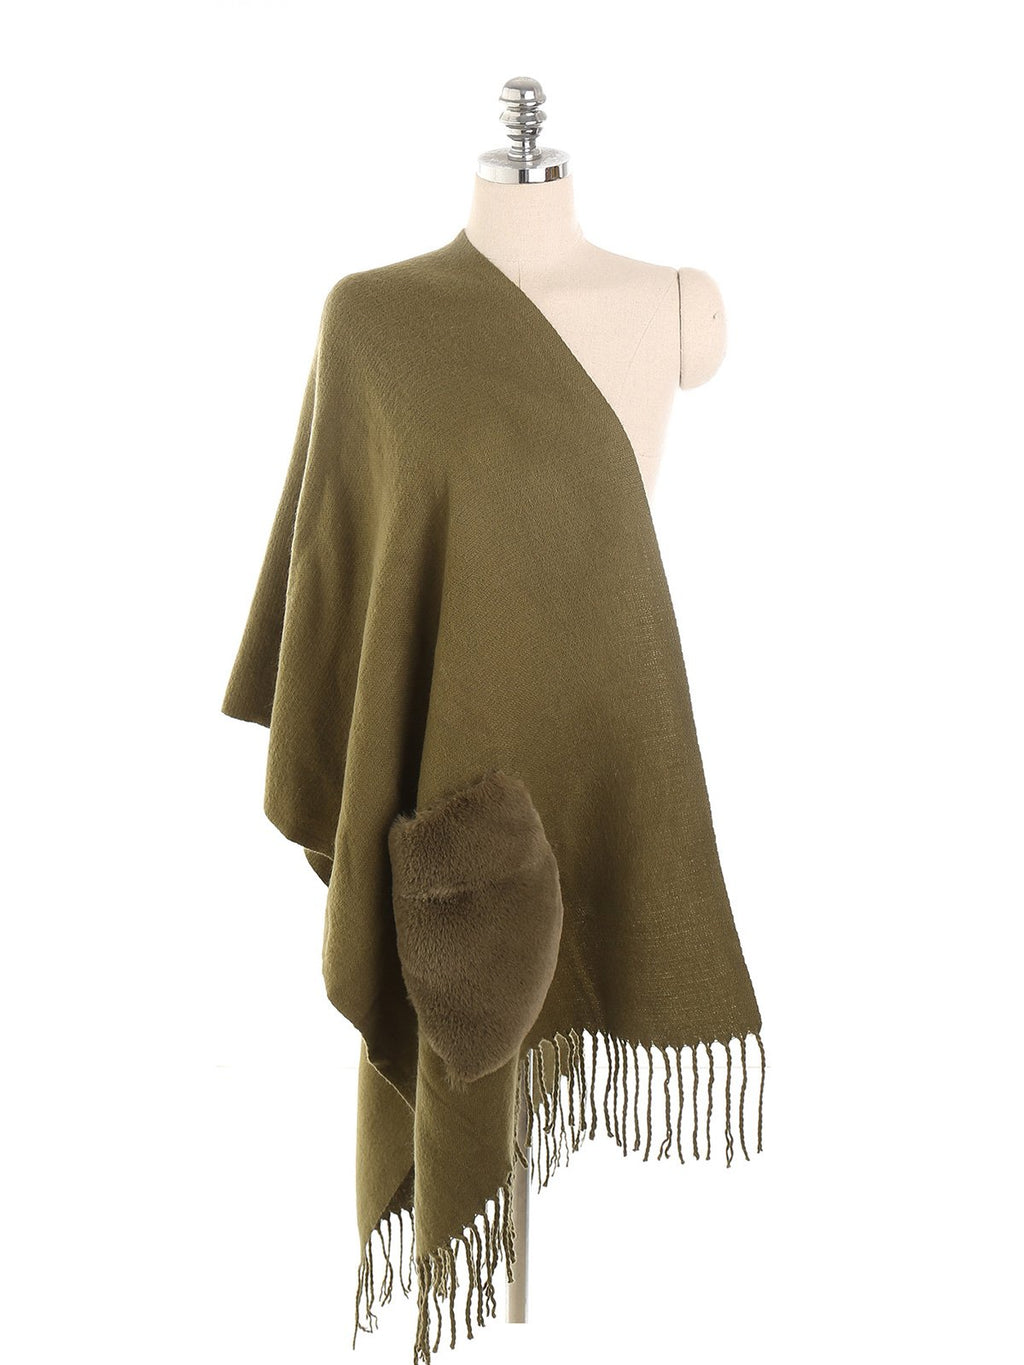 Armygreen Solid Fringe With Pocket Woolen Shawl Scarf